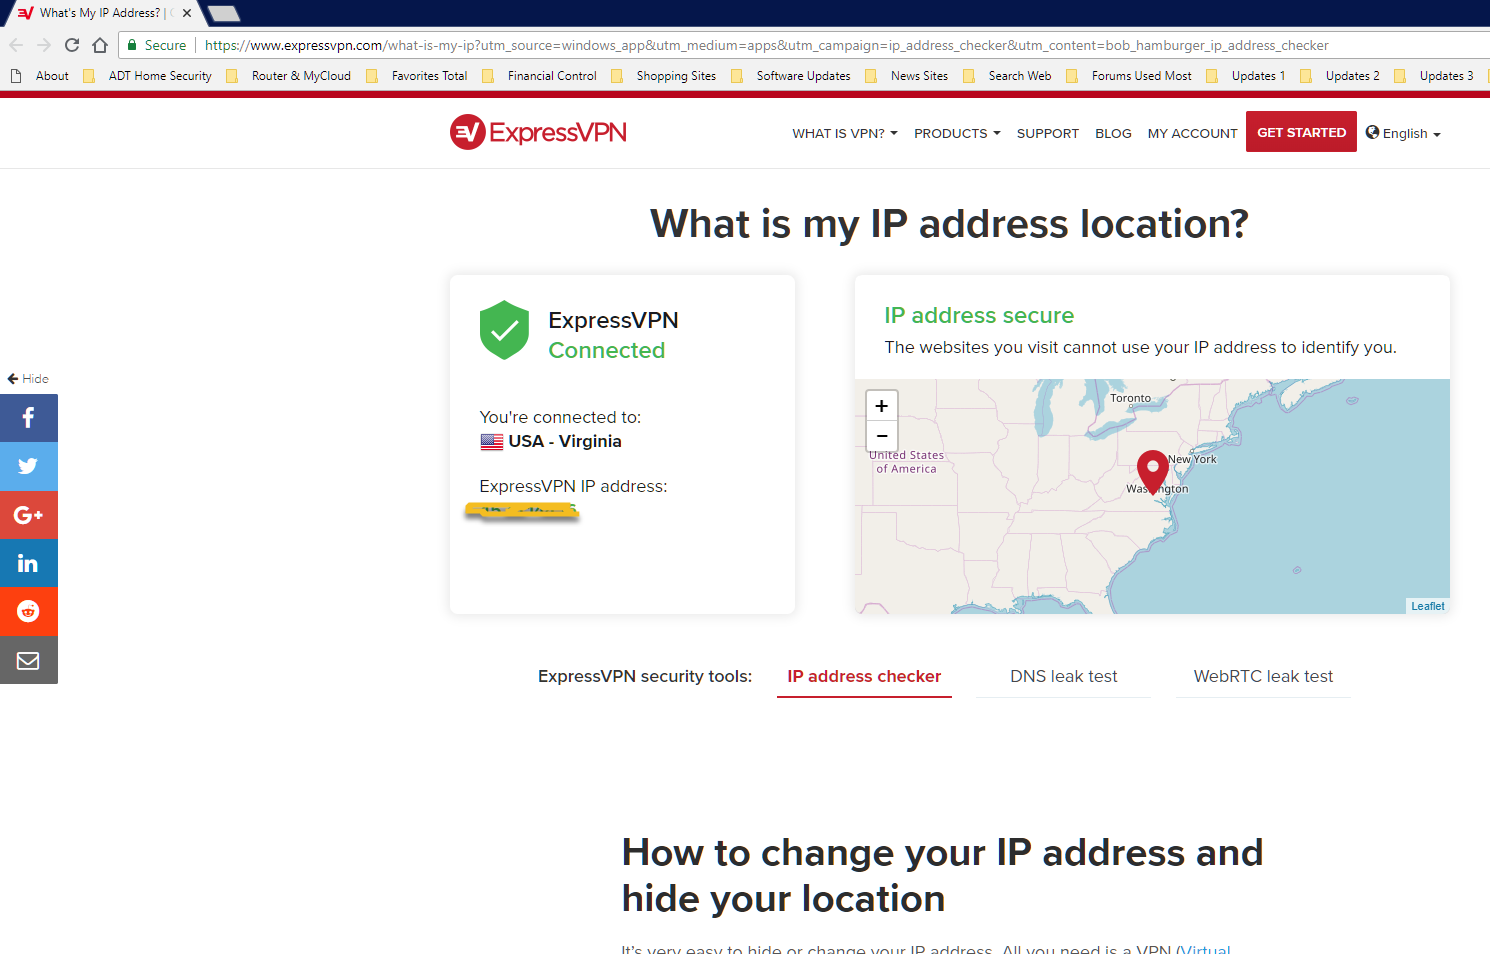 Prevents https://www expressvpn com from properly displaying